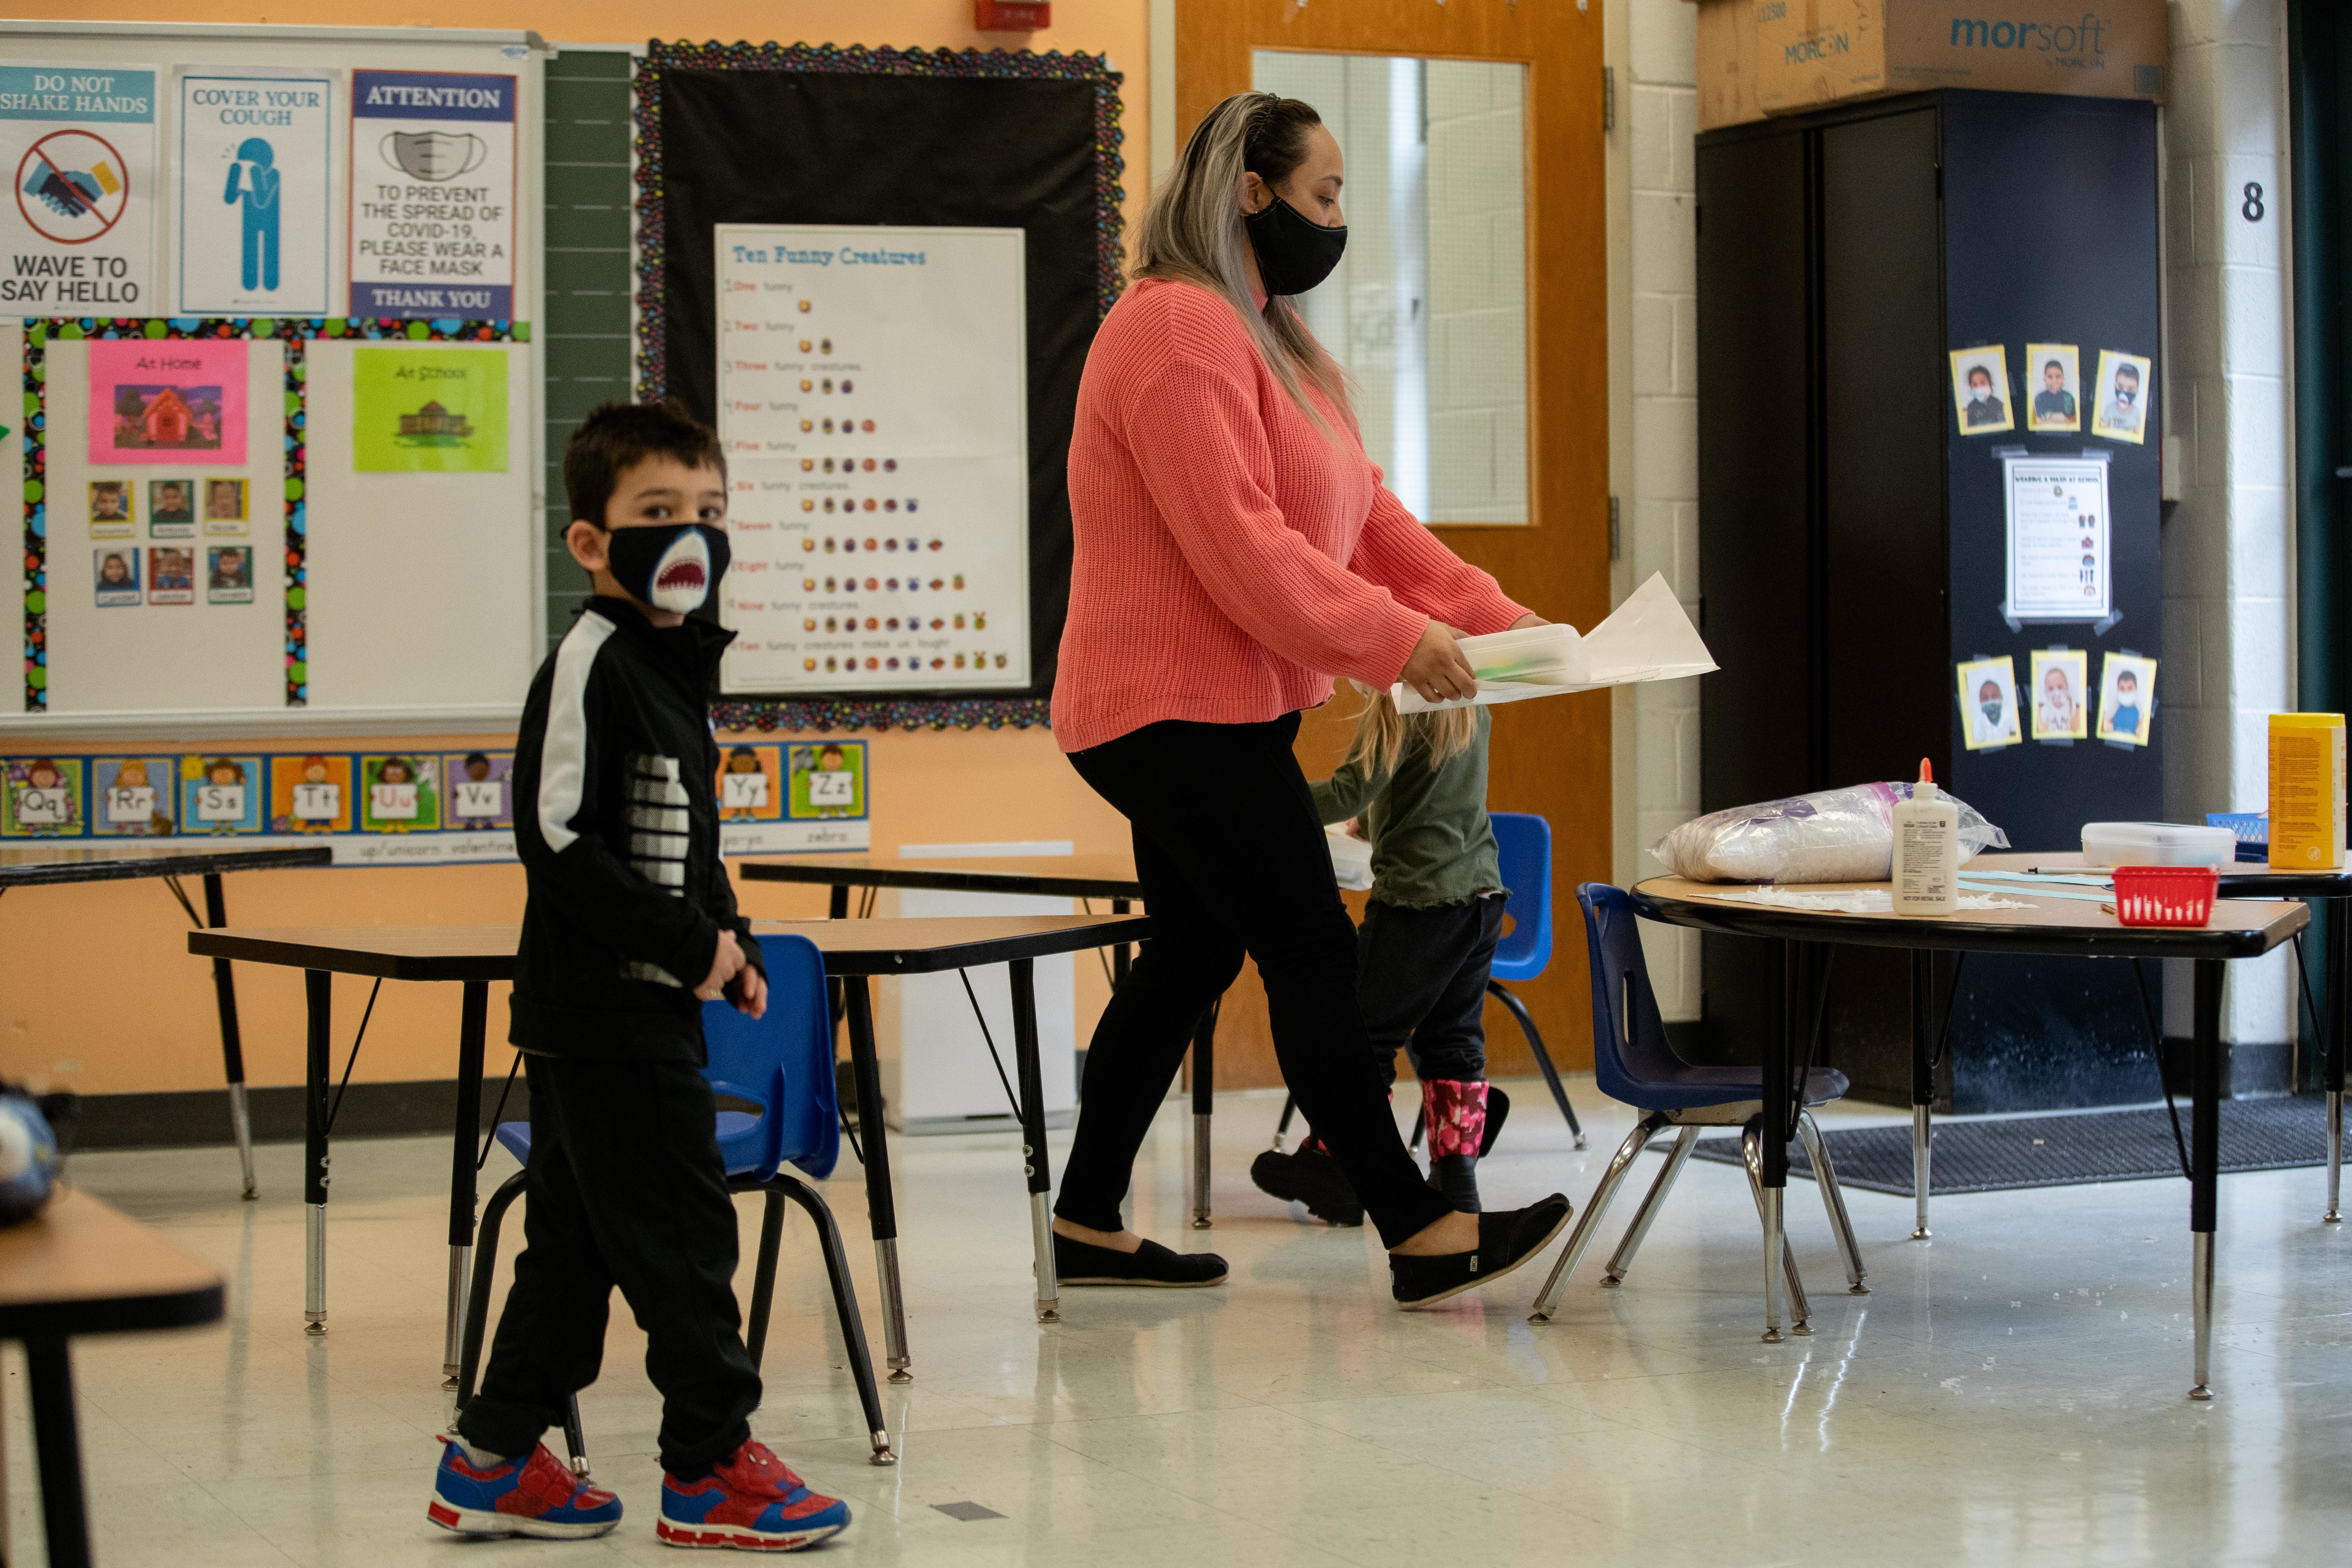 A teacher and a student walk across a classroom at Jordan Community Elementary School in the Rogers Park neighborhood, Friday morning, Jan. 15, 2021.